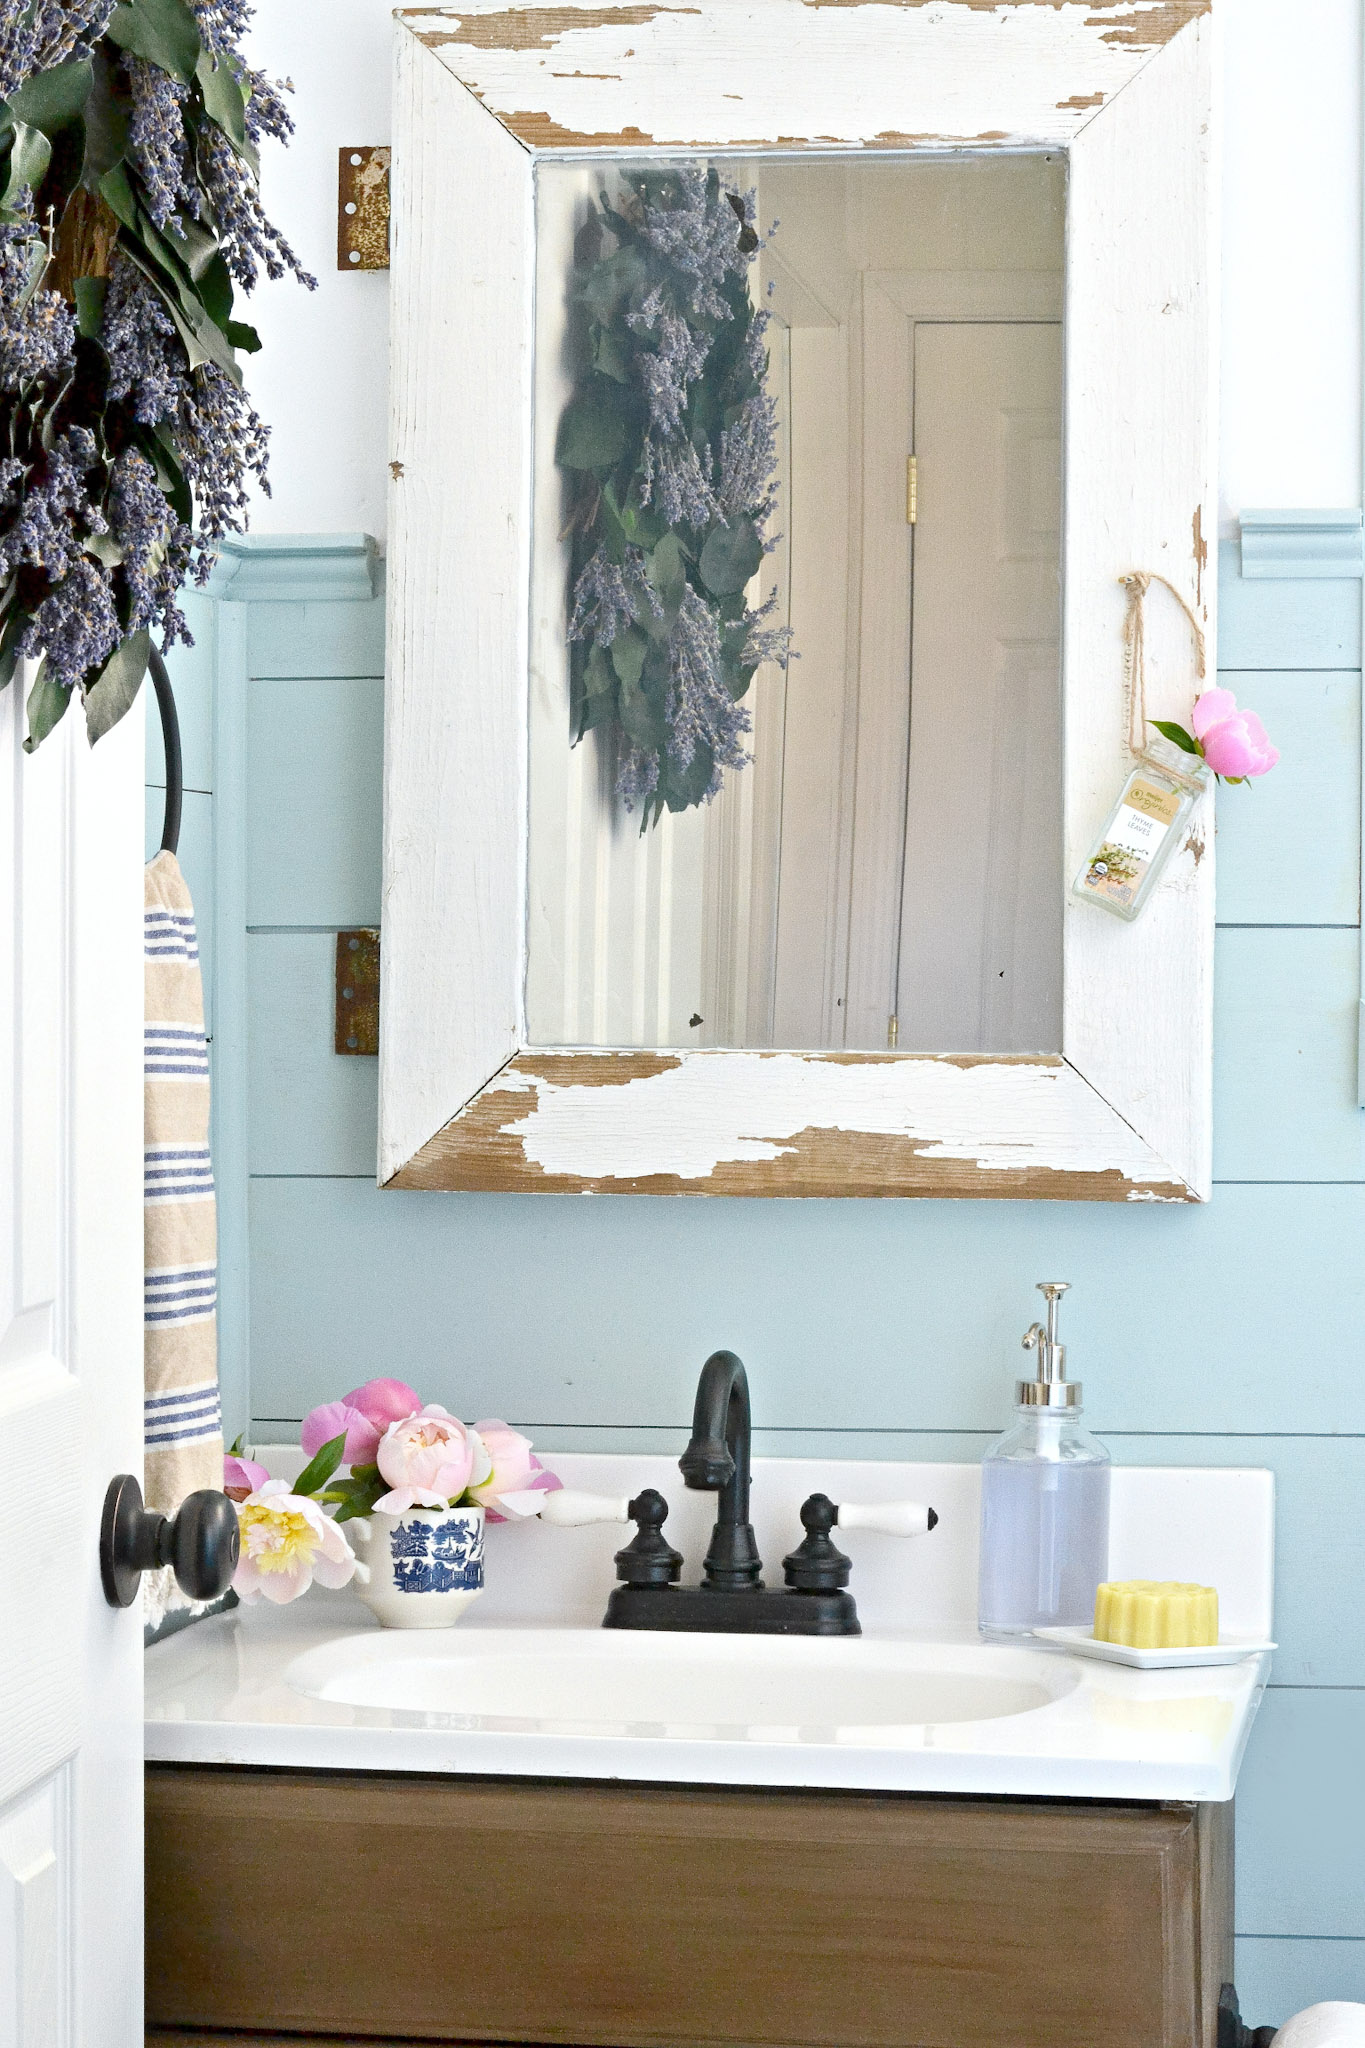 Painted Faucet in 5 Easy Steps - The Weathered Fox